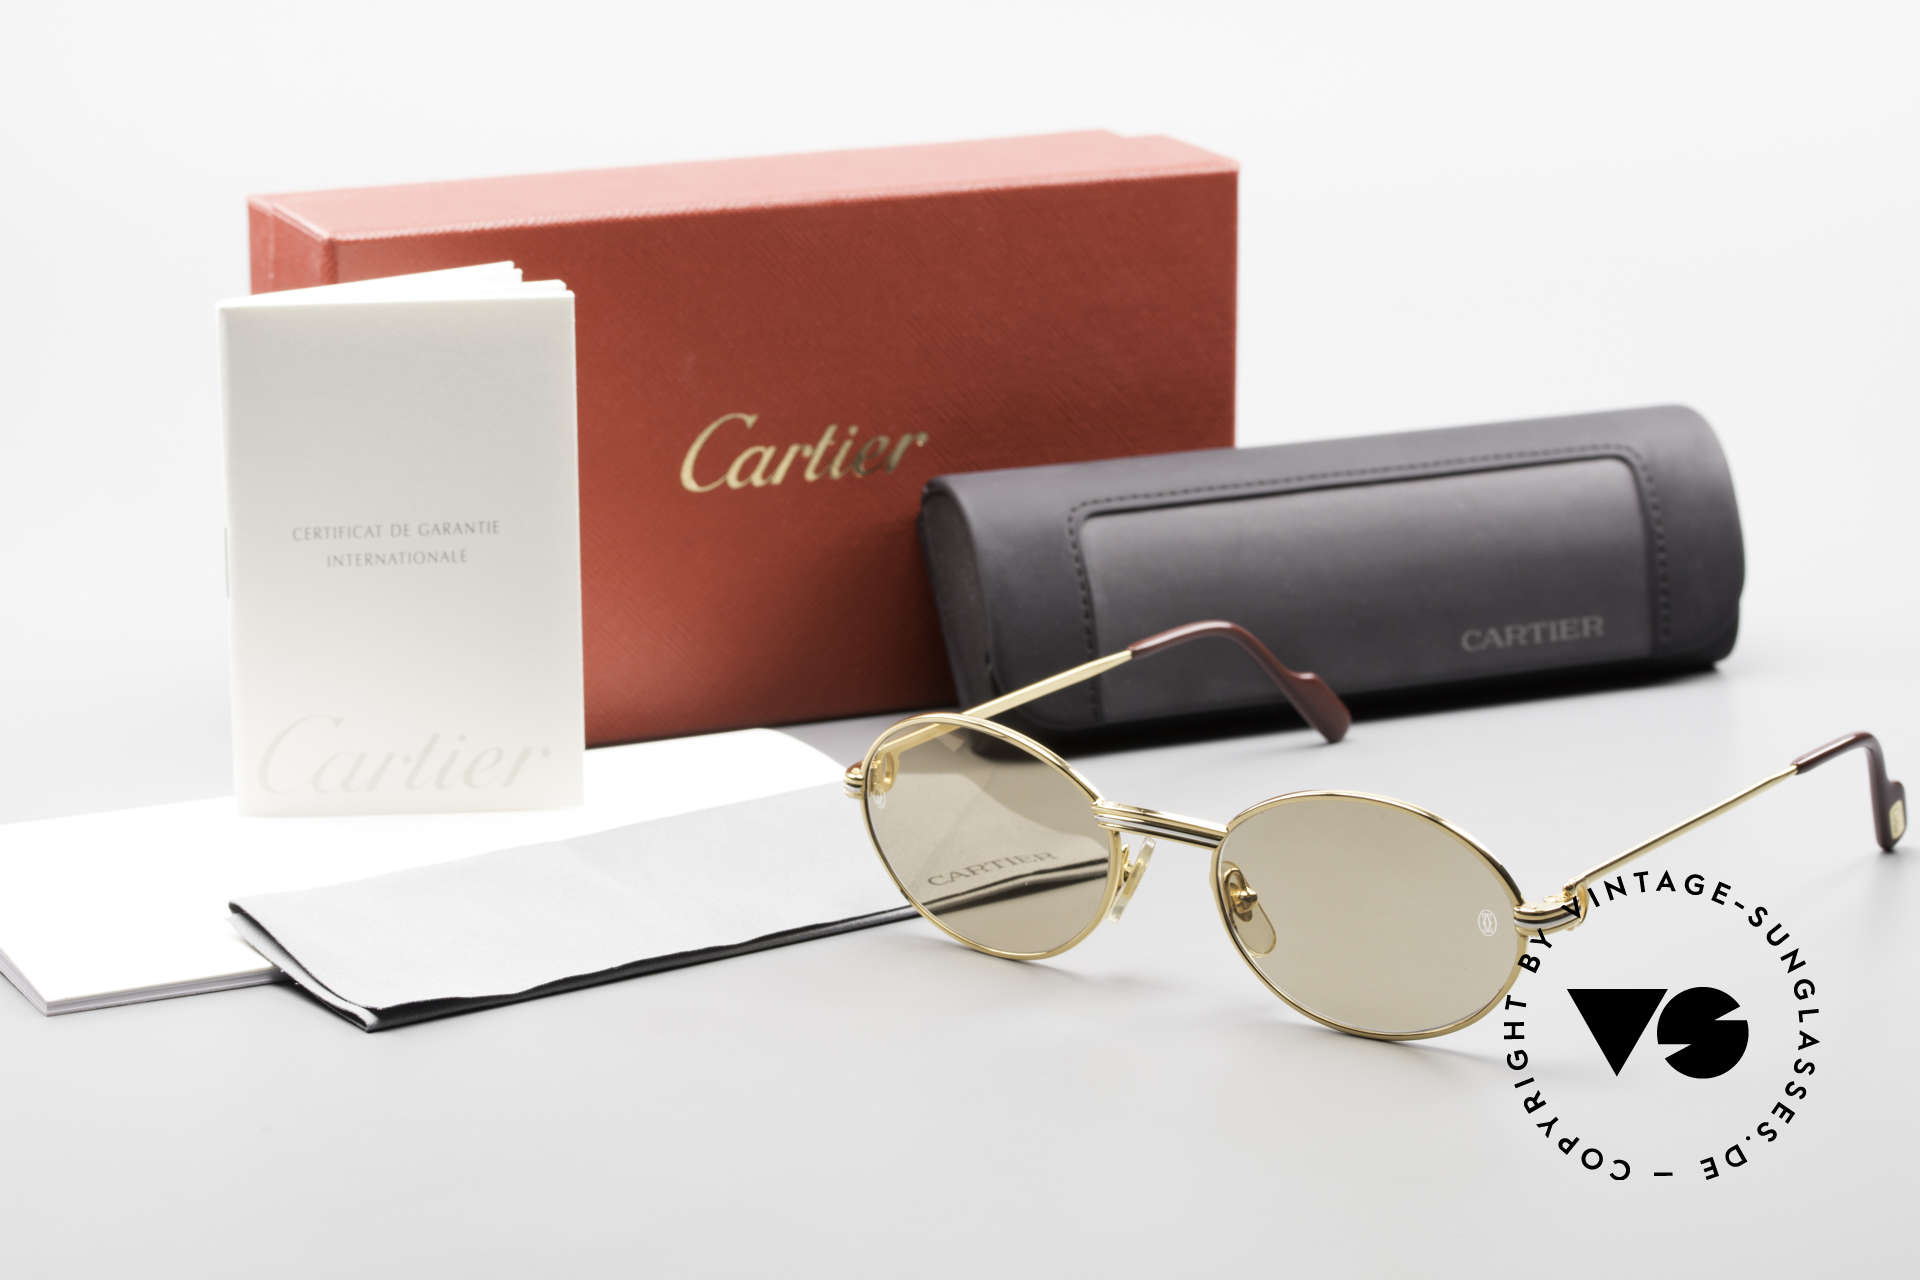 Cartier Saint Honore - S Oval 90's Luxury Sunglasses, Size: small, Made for Men and Women